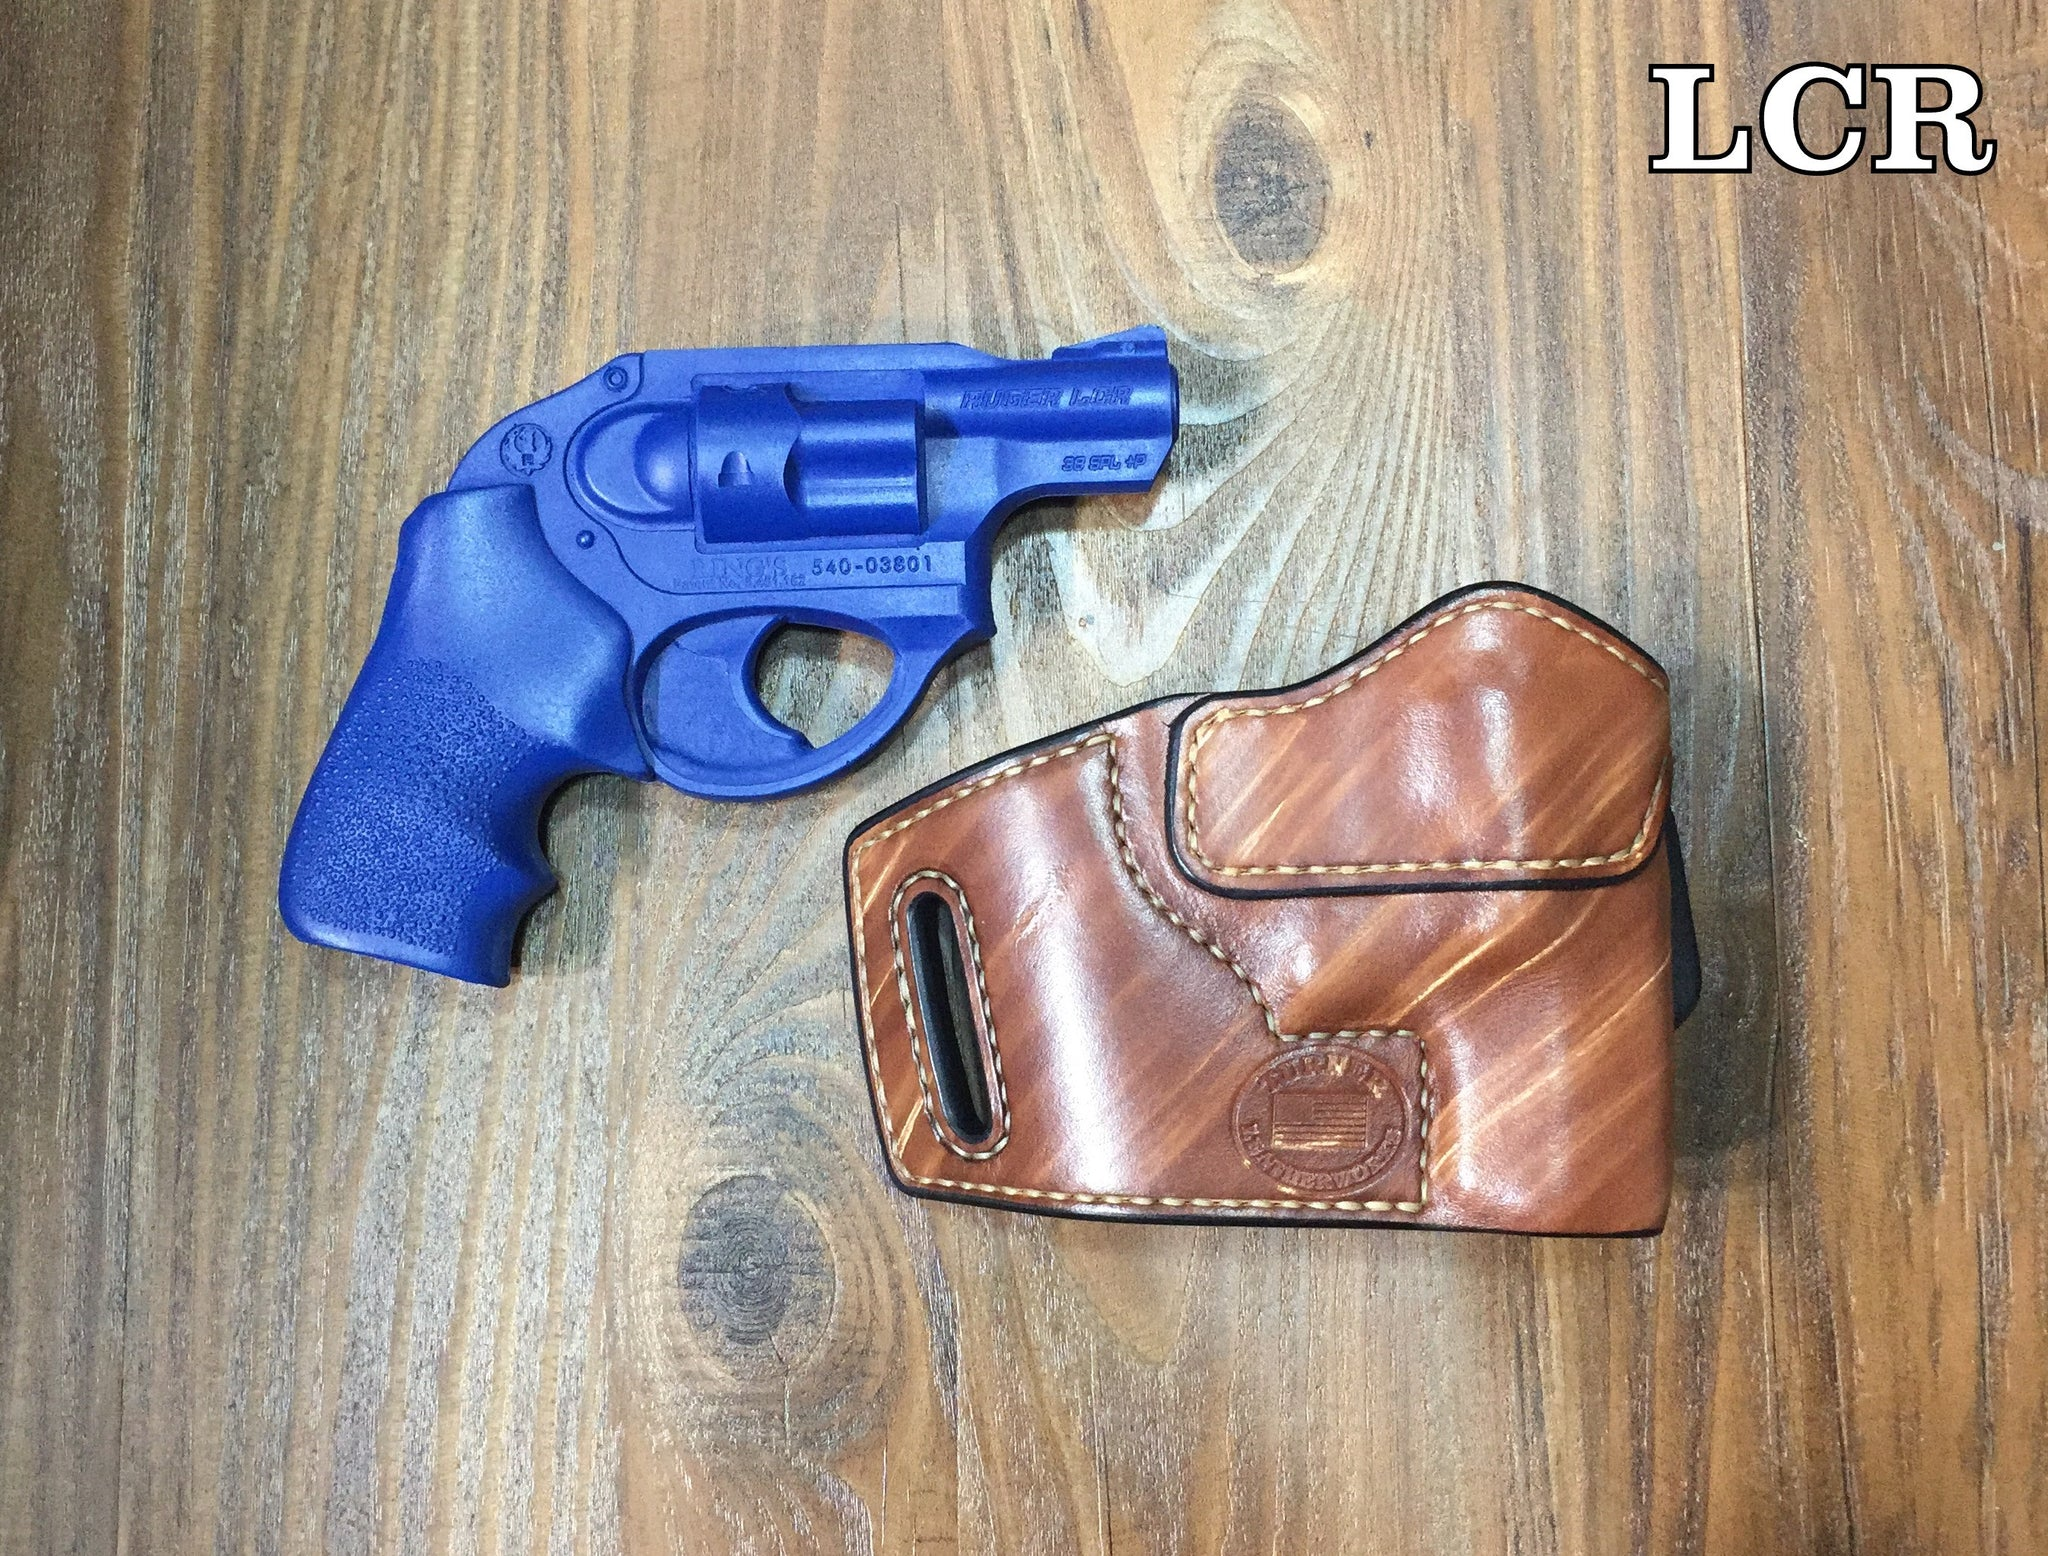 Custom Leather Holster for Ruger Semi-Auto Handguns LC9 LCR LCP SR9